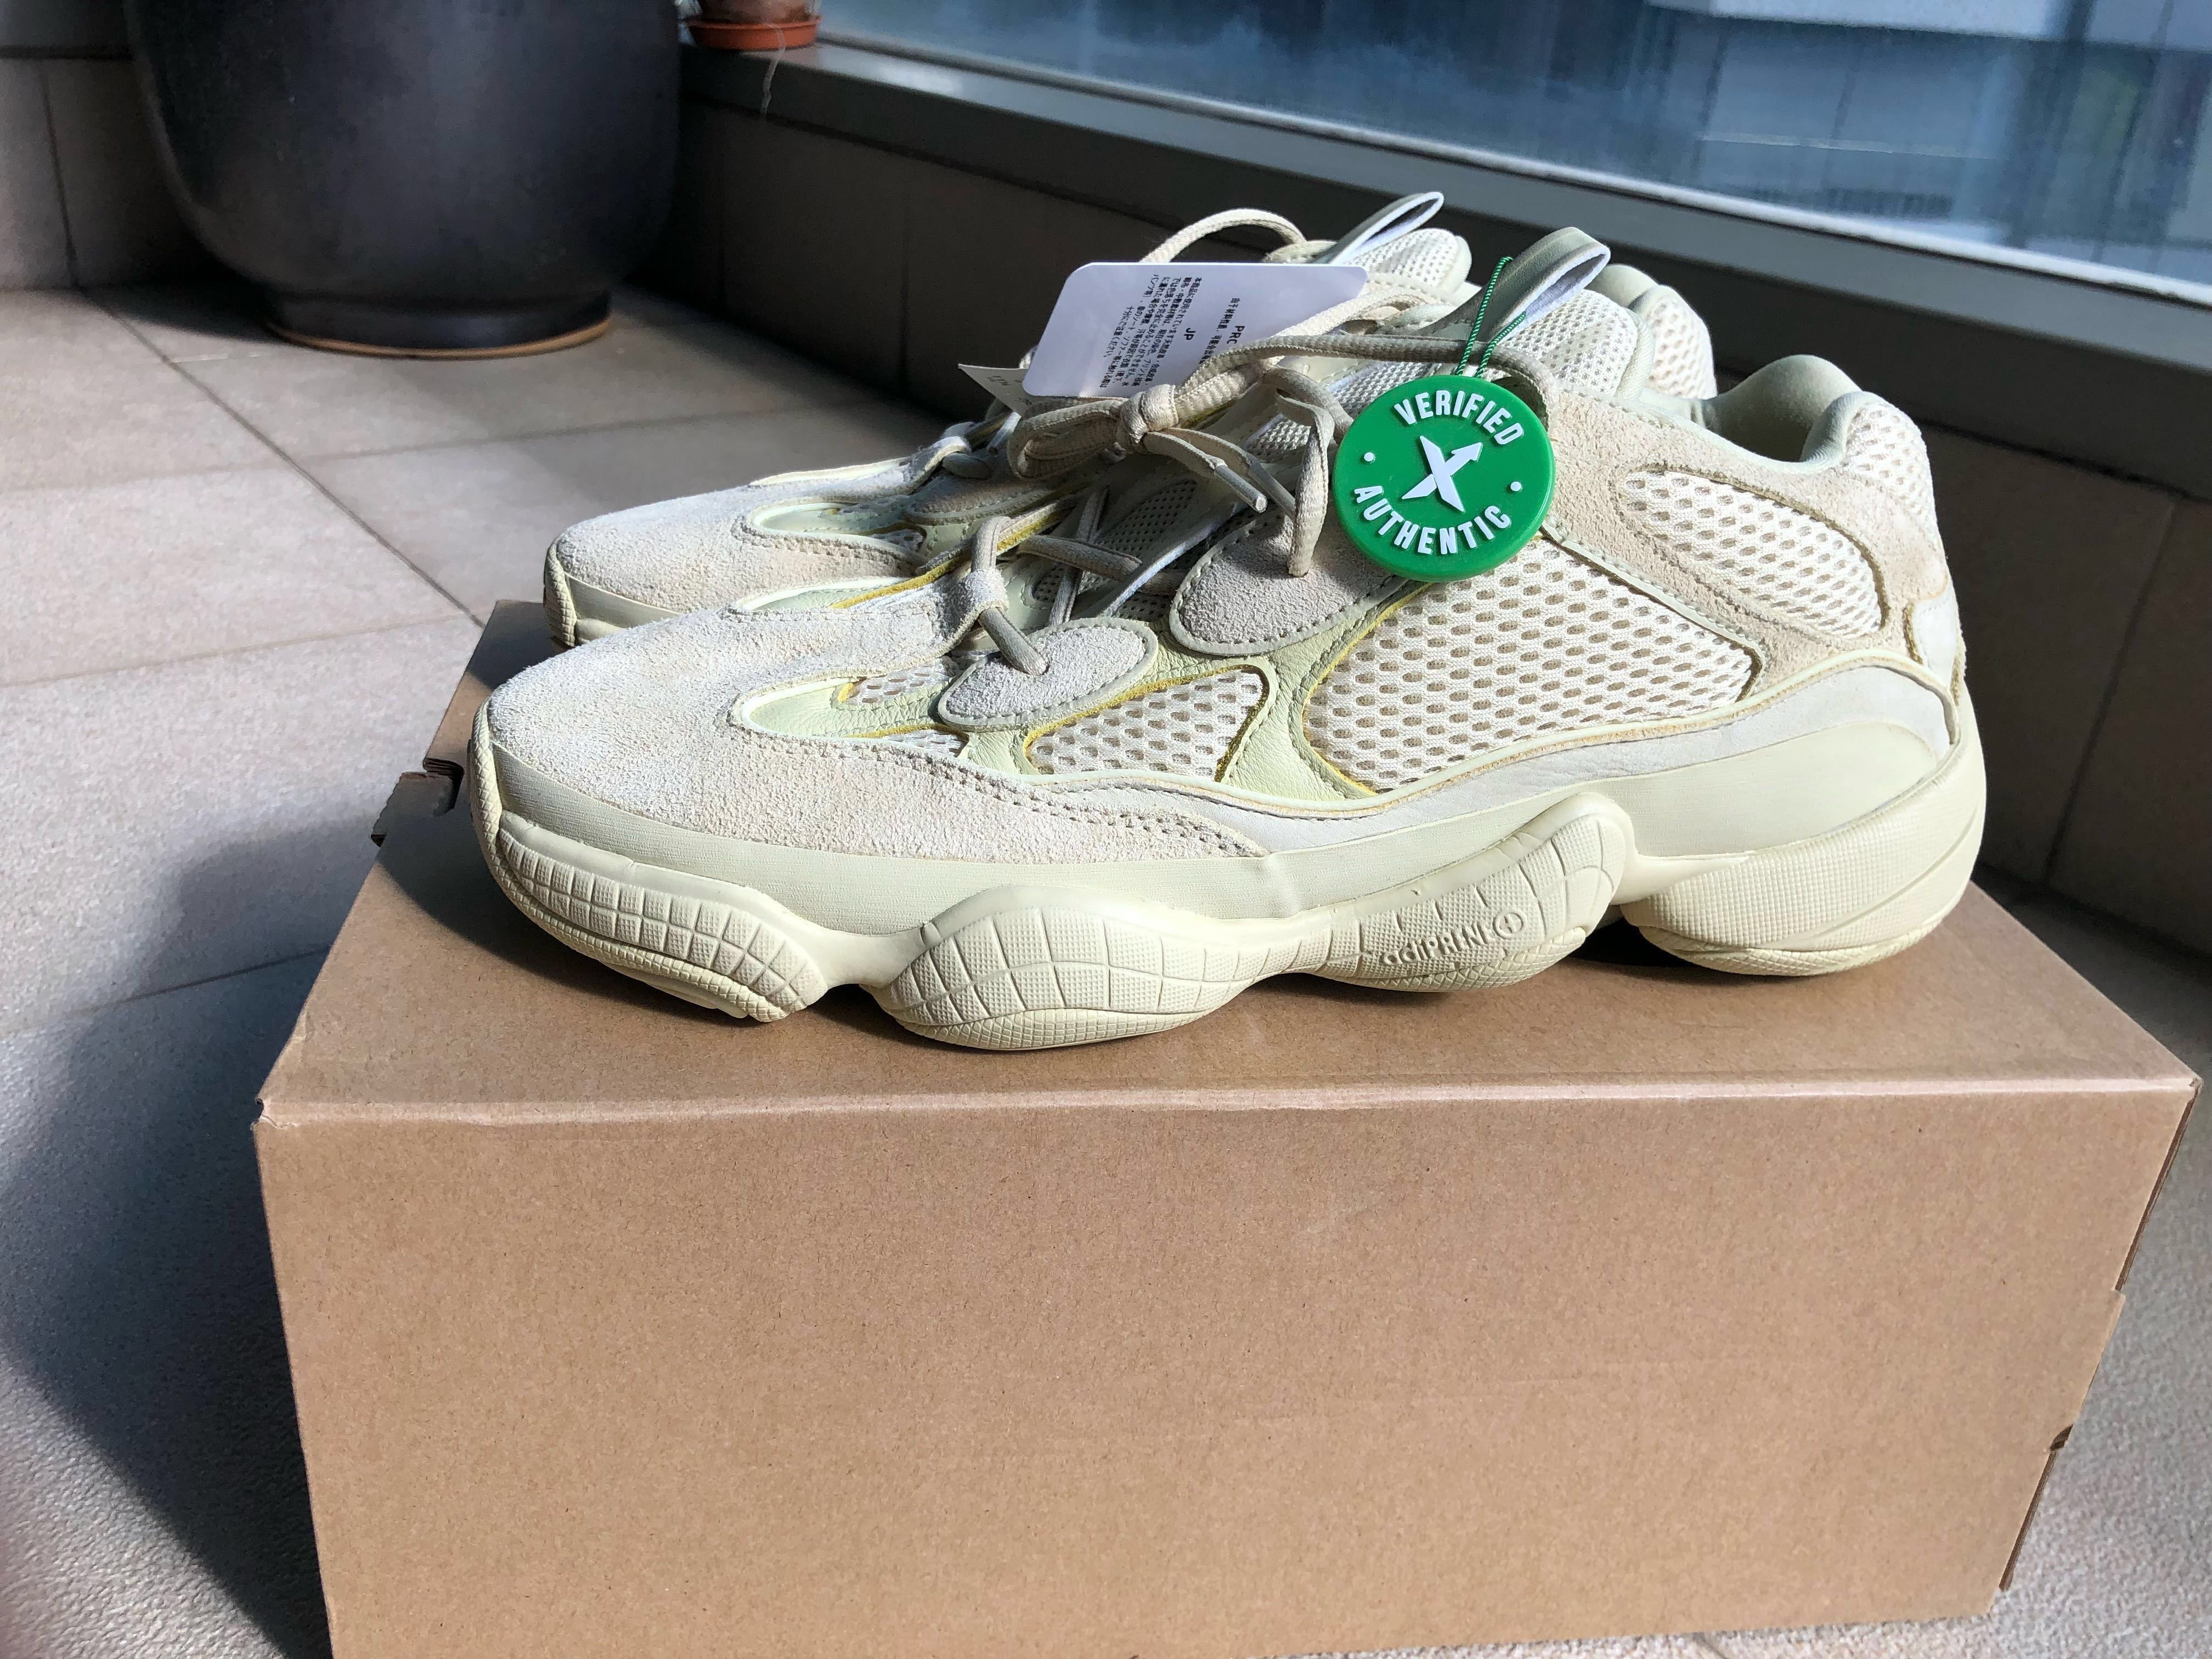 release date 4dc8a 58bca Adidas Yeezy 500 supermoon yellow, Men s Fashion, Footwear, Sneakers ...